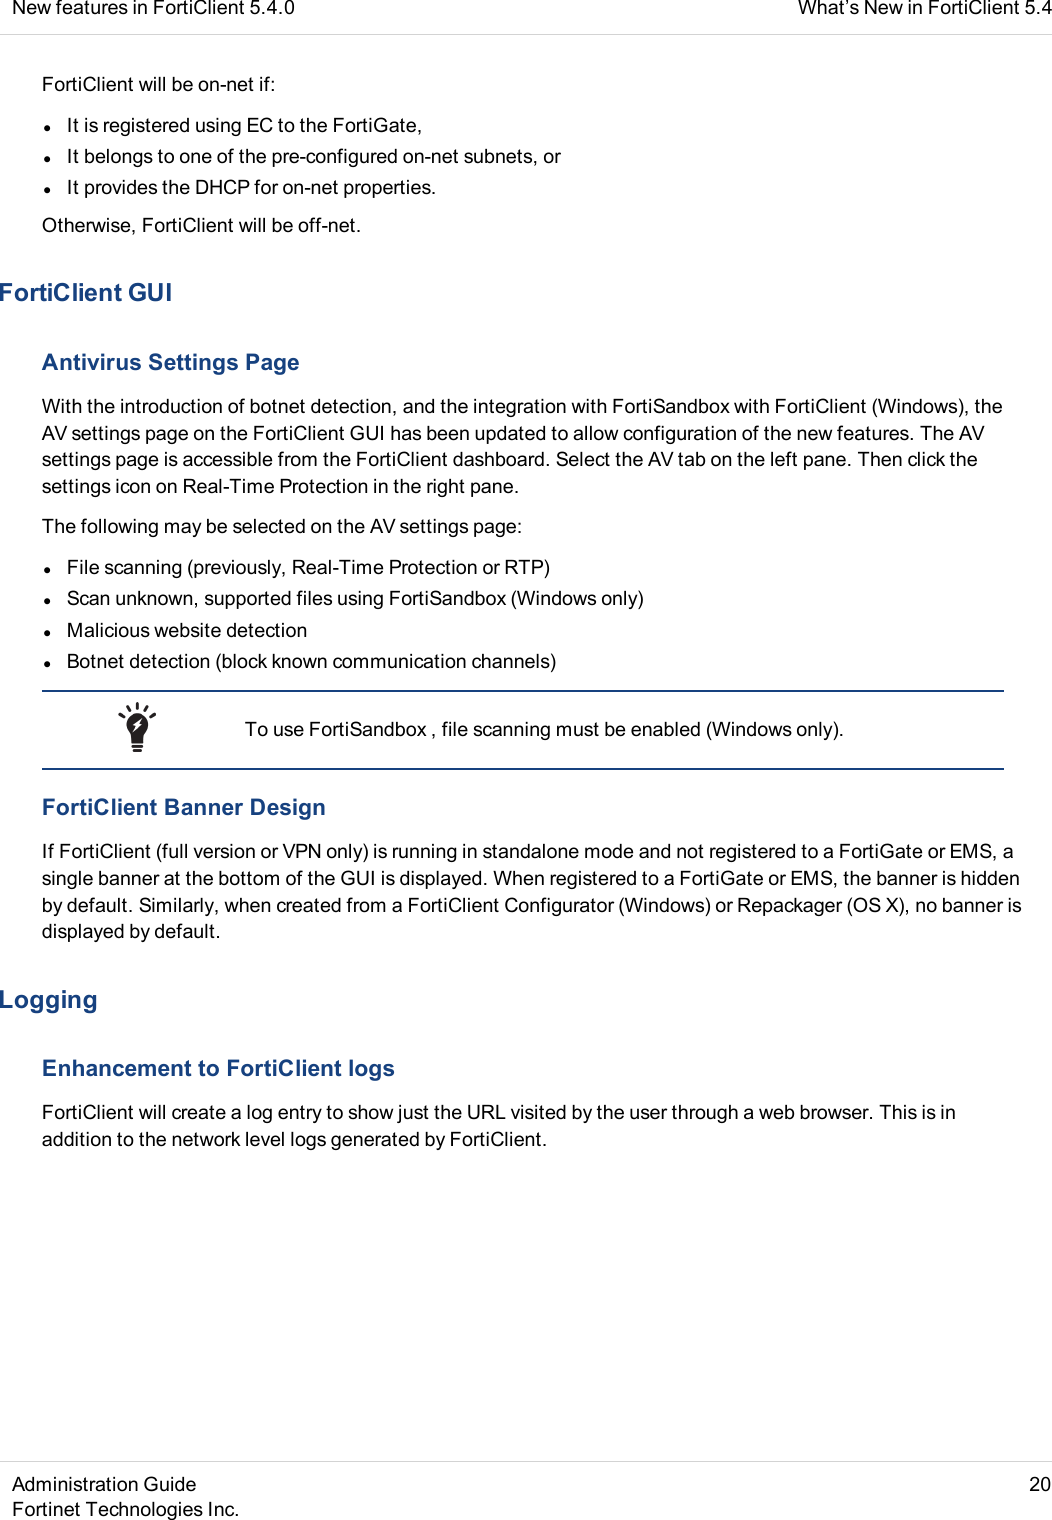 FortiClient Administration Guide Forti Client 5 4